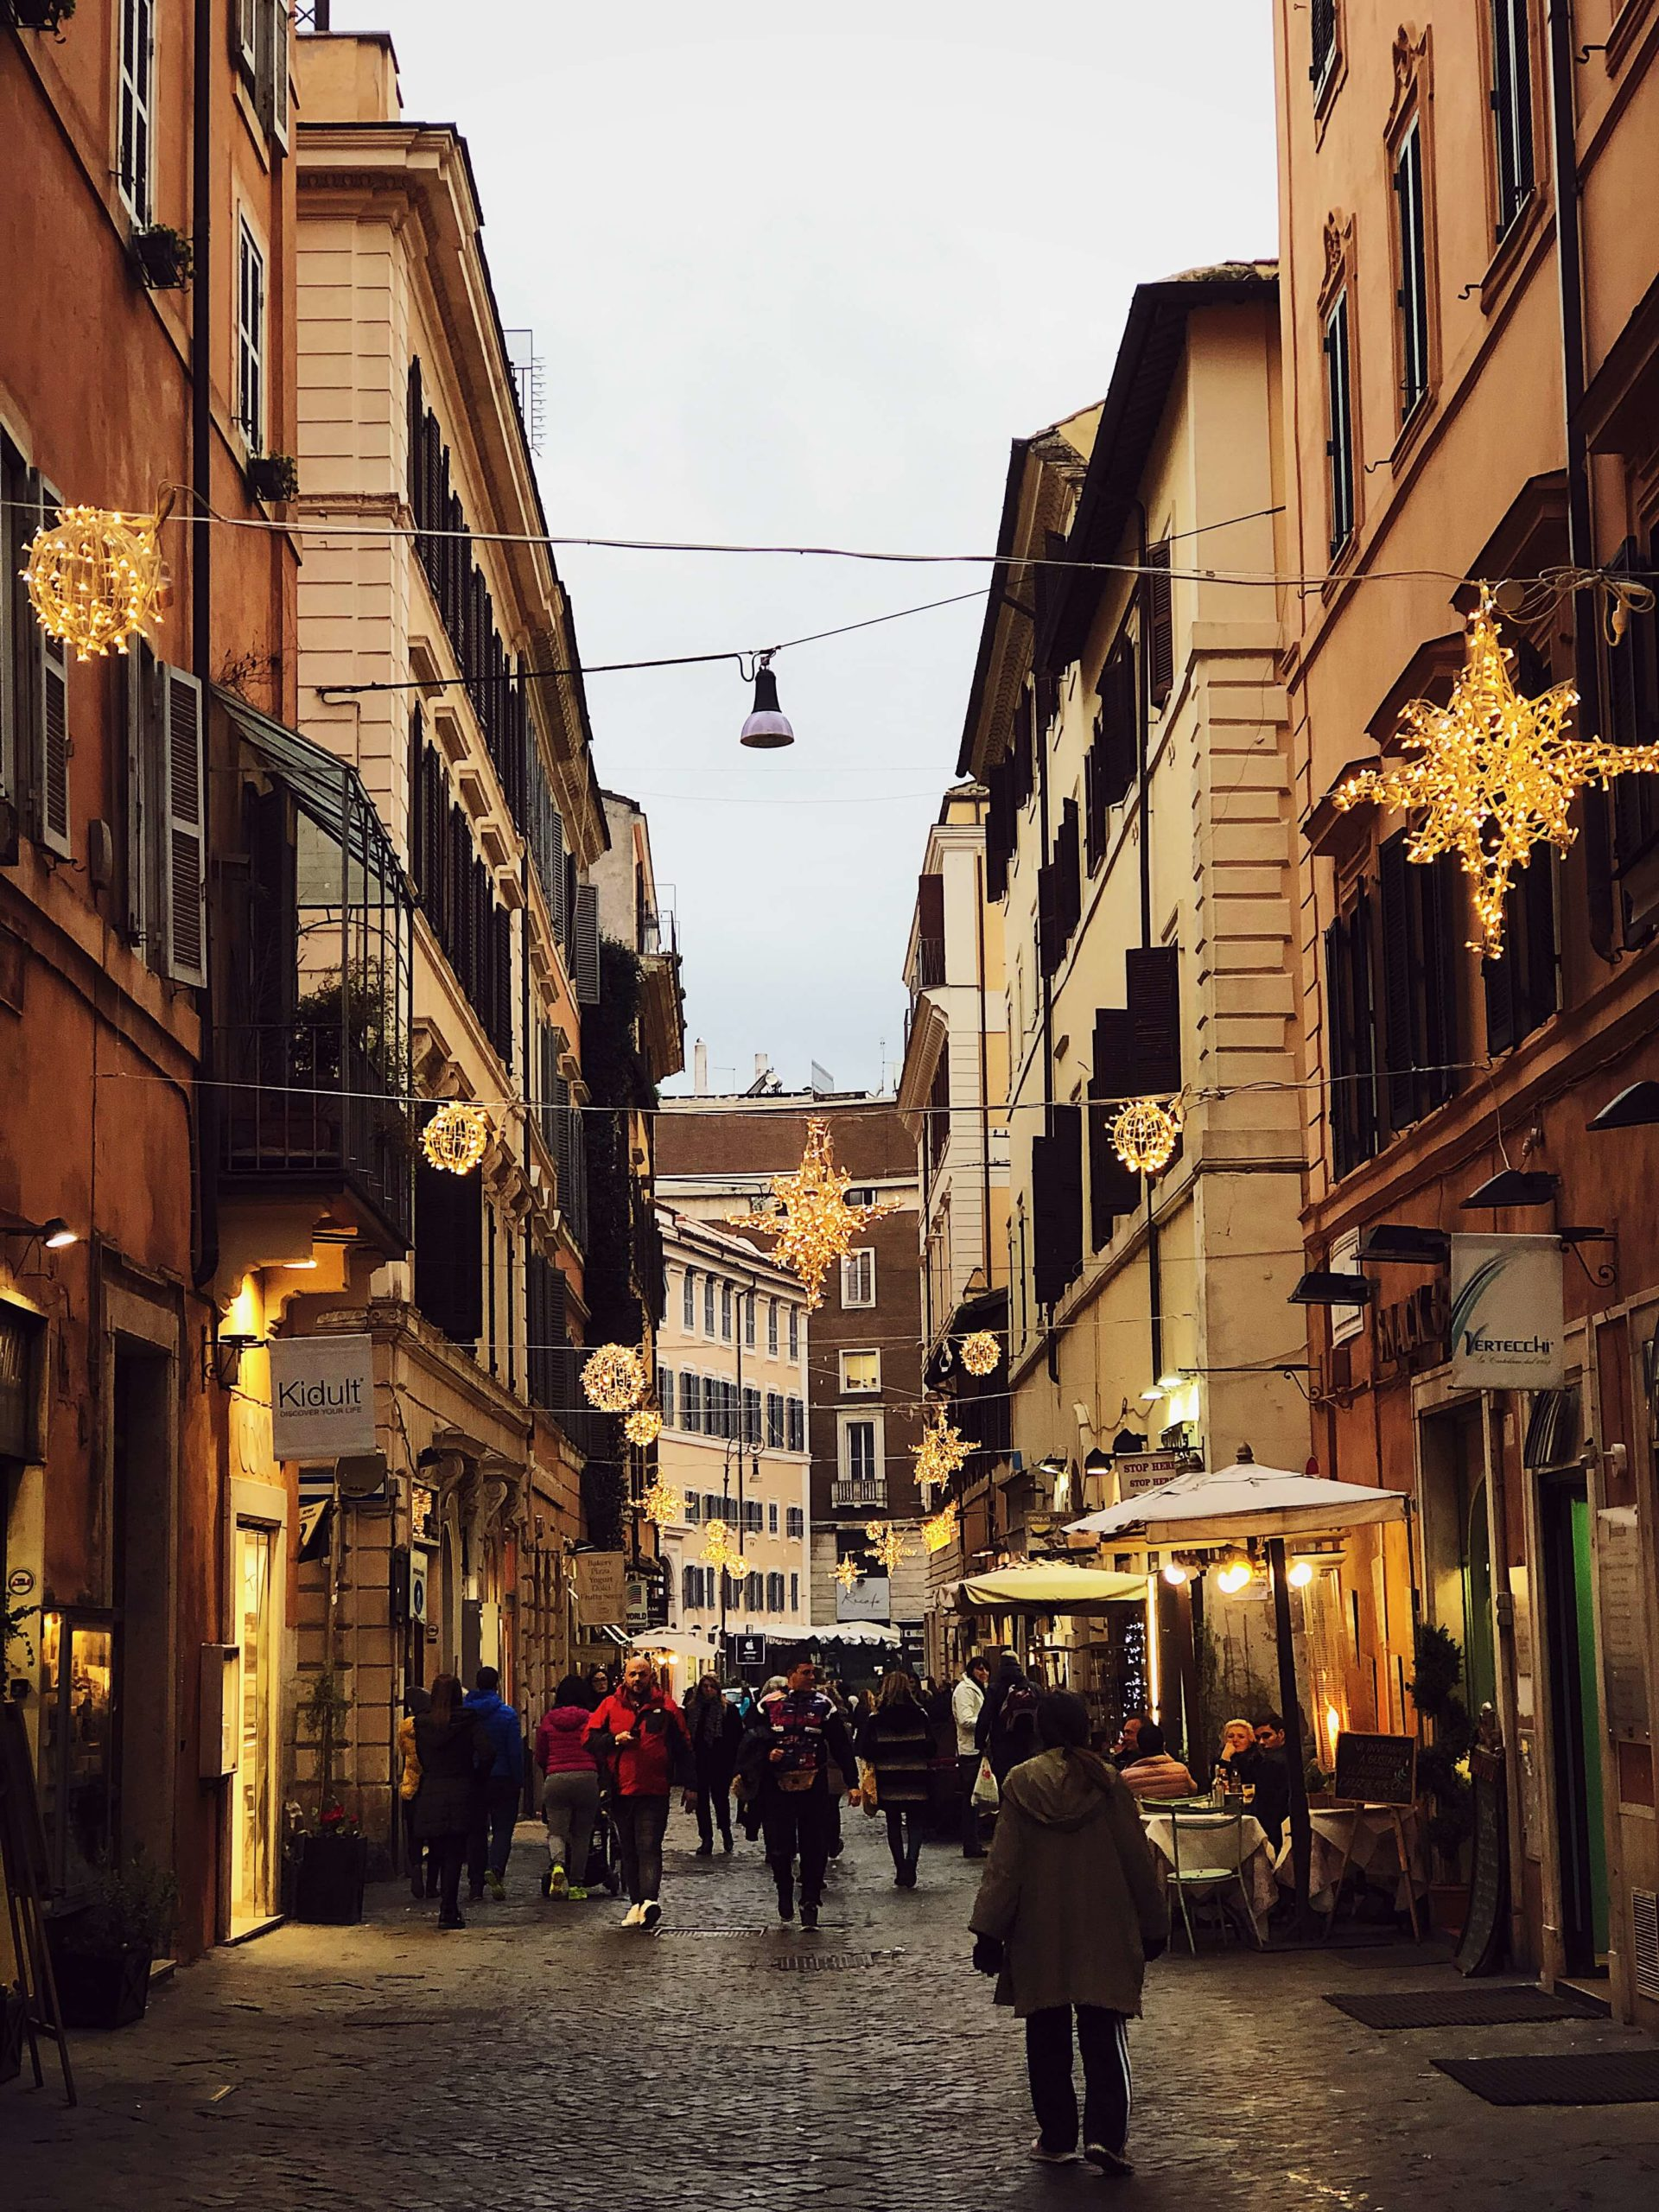 Christmas decorations in Rome